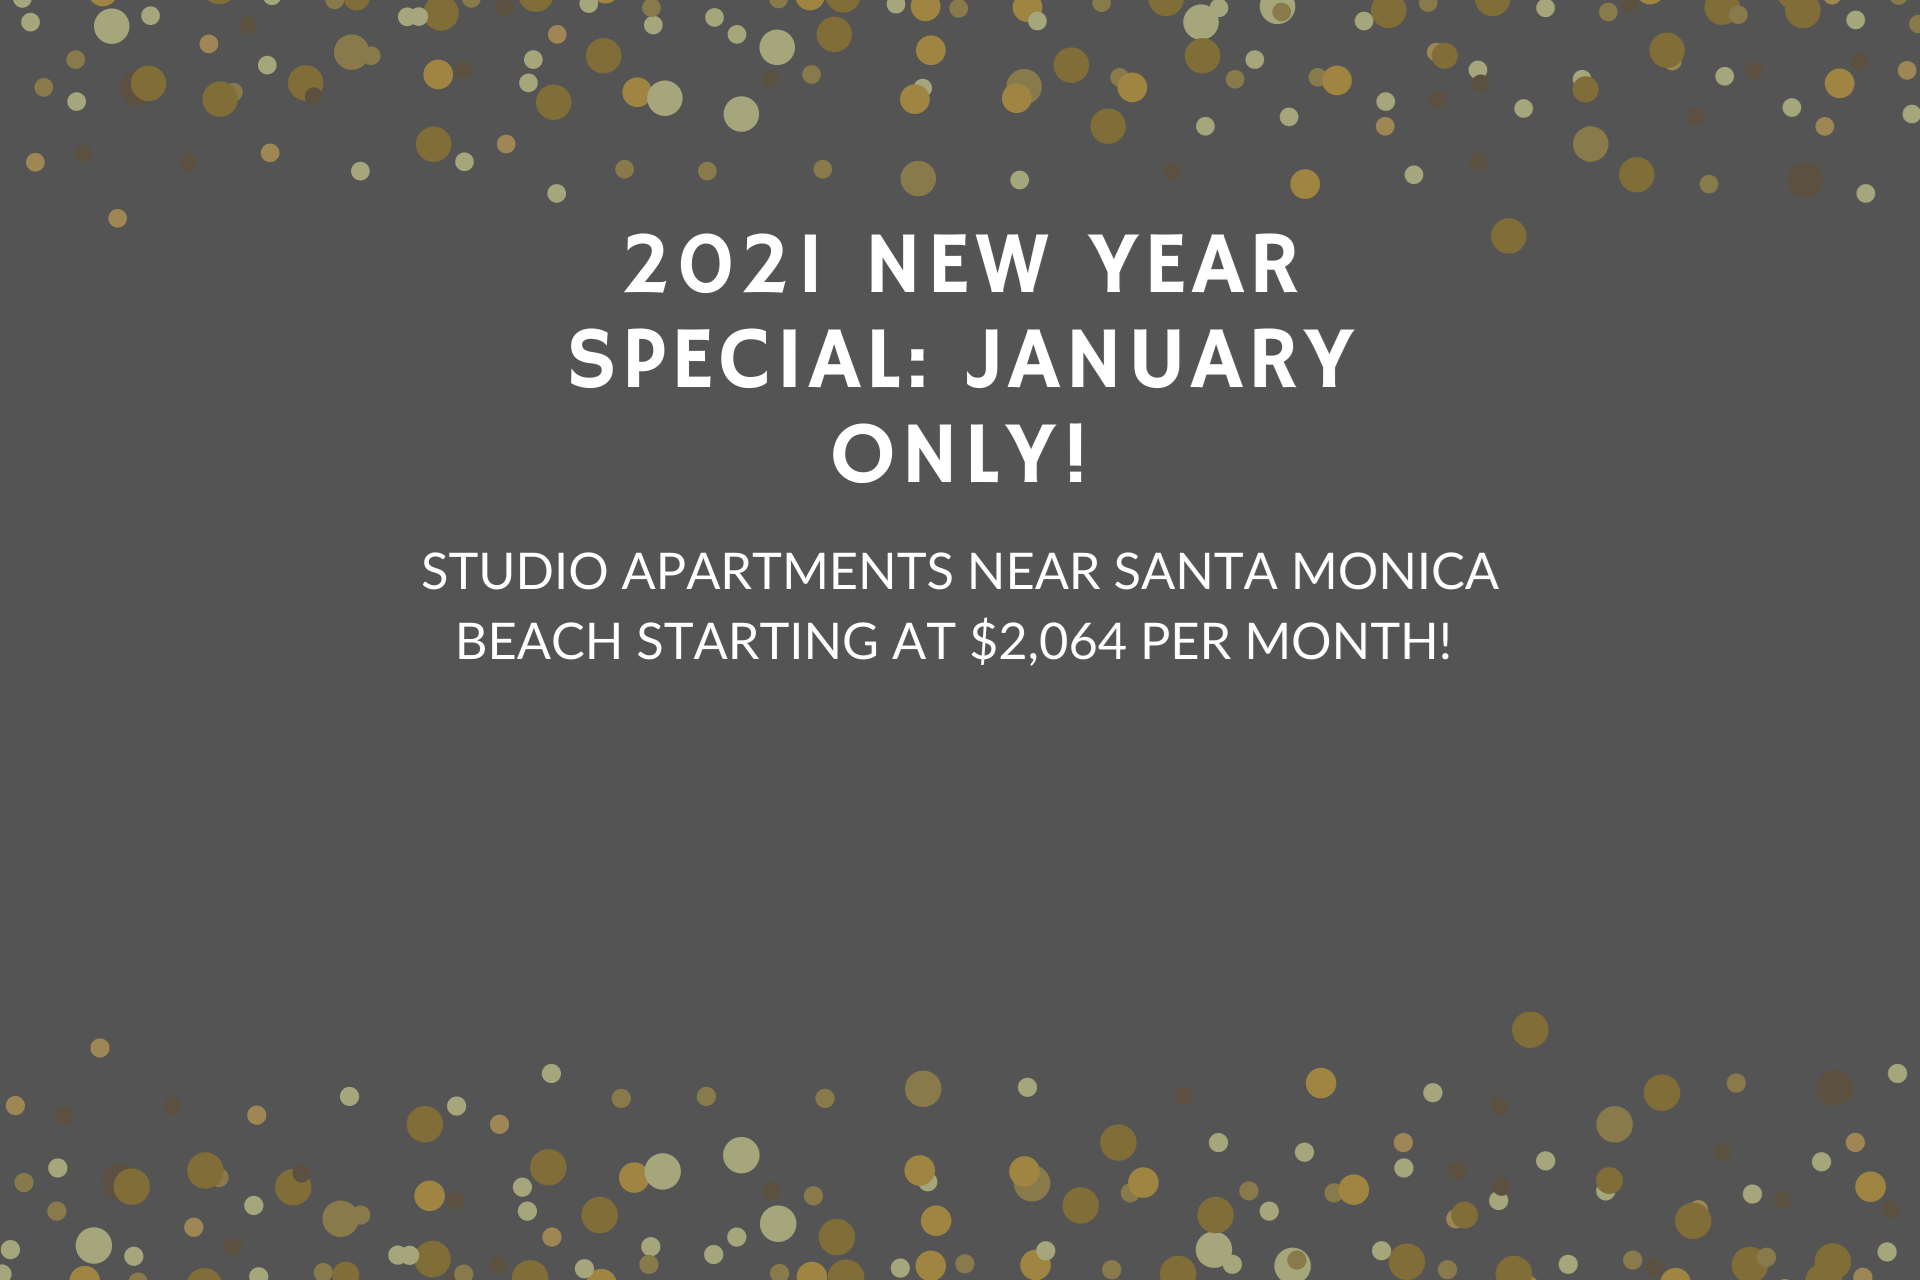 New-Years-Santa-Monica-Affordable-Apartments-Leasing-Special (4).png